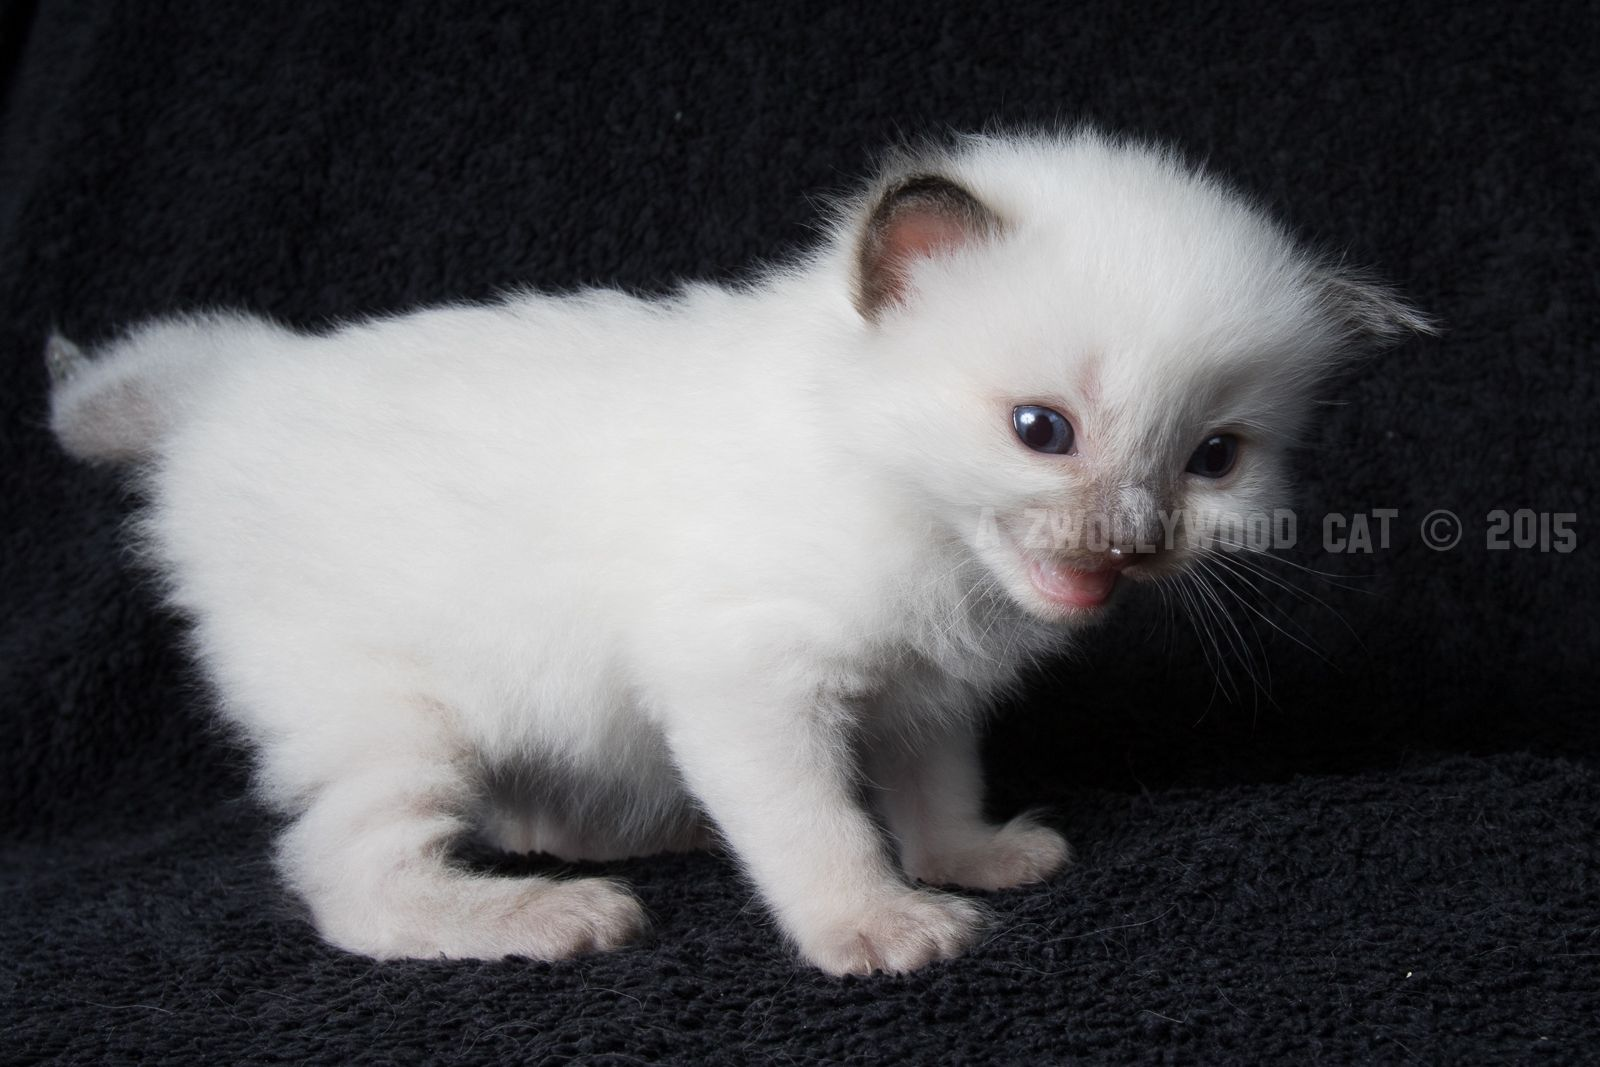 2015 Thor A Zwollywood Cat 3 Weeks Old Ragdoll Kitten Seal Colourpoint Dark World Litter Kittens Cats Cattery Kittens